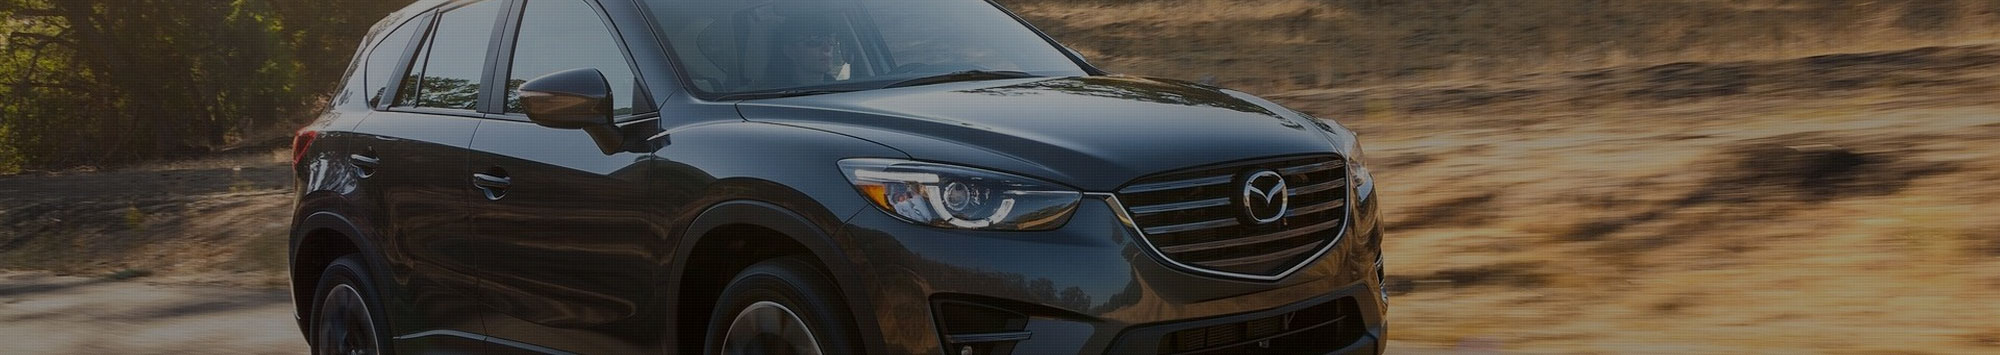 mazda large commercial toyota ispot orleans tv new ad